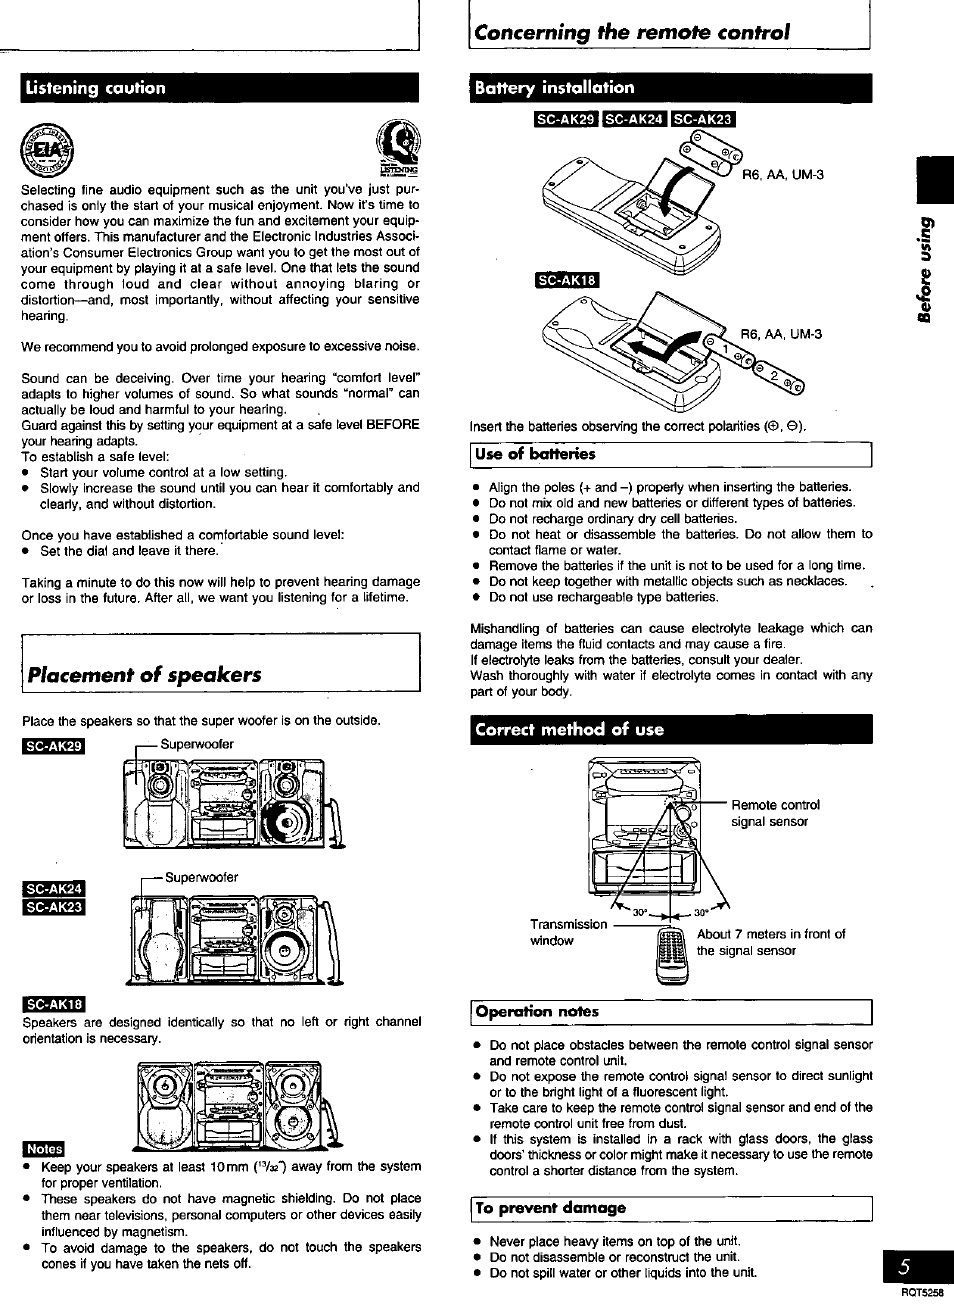 Battery Installation Correct Method Of Use Tsti Panasonic Sc Using Body Fluids Concerning The Remote Control